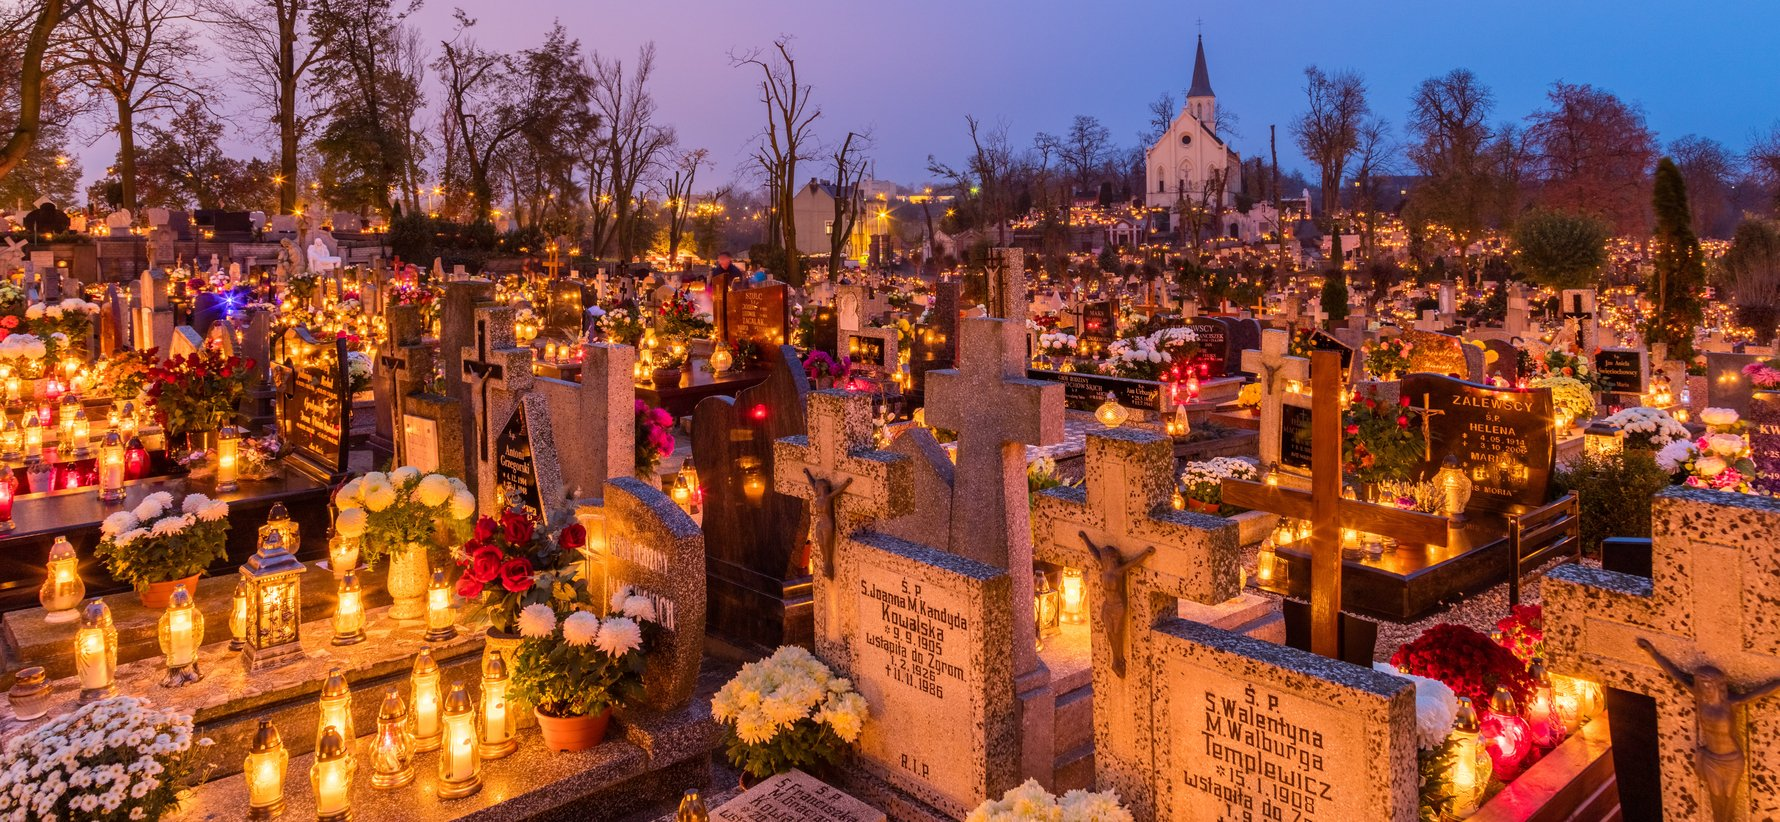 All Saints' Day in Gniezno, Poland. Diego Delso, delso.photo, License CC-BY-SA